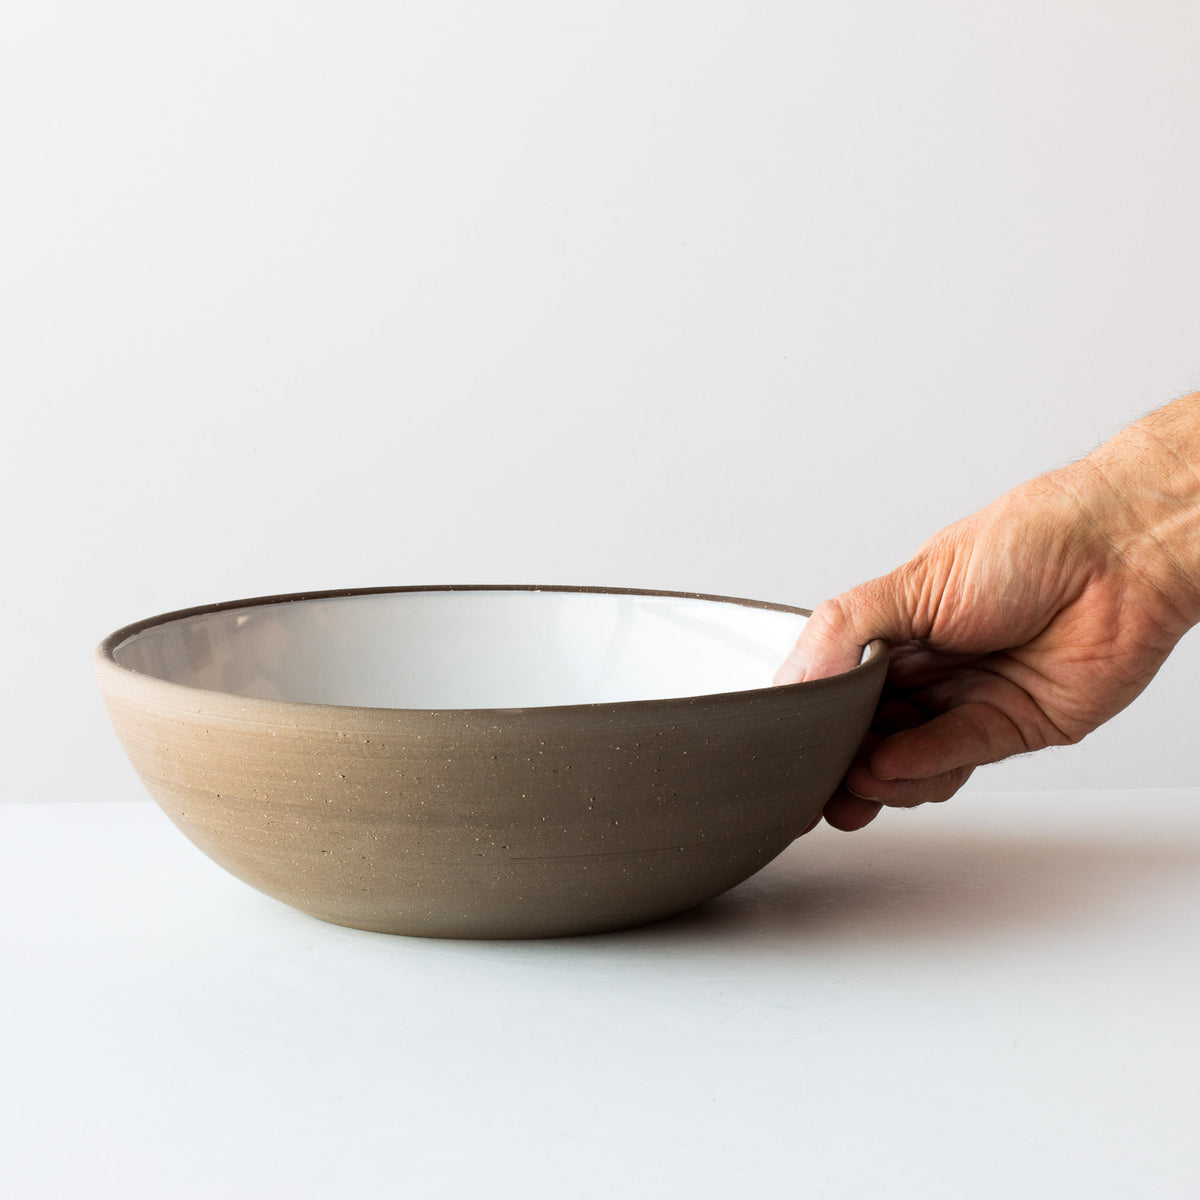 Handmade Large Ceramic Serving Bowls - In Grey Stoneware - Sold by Chic & Basta